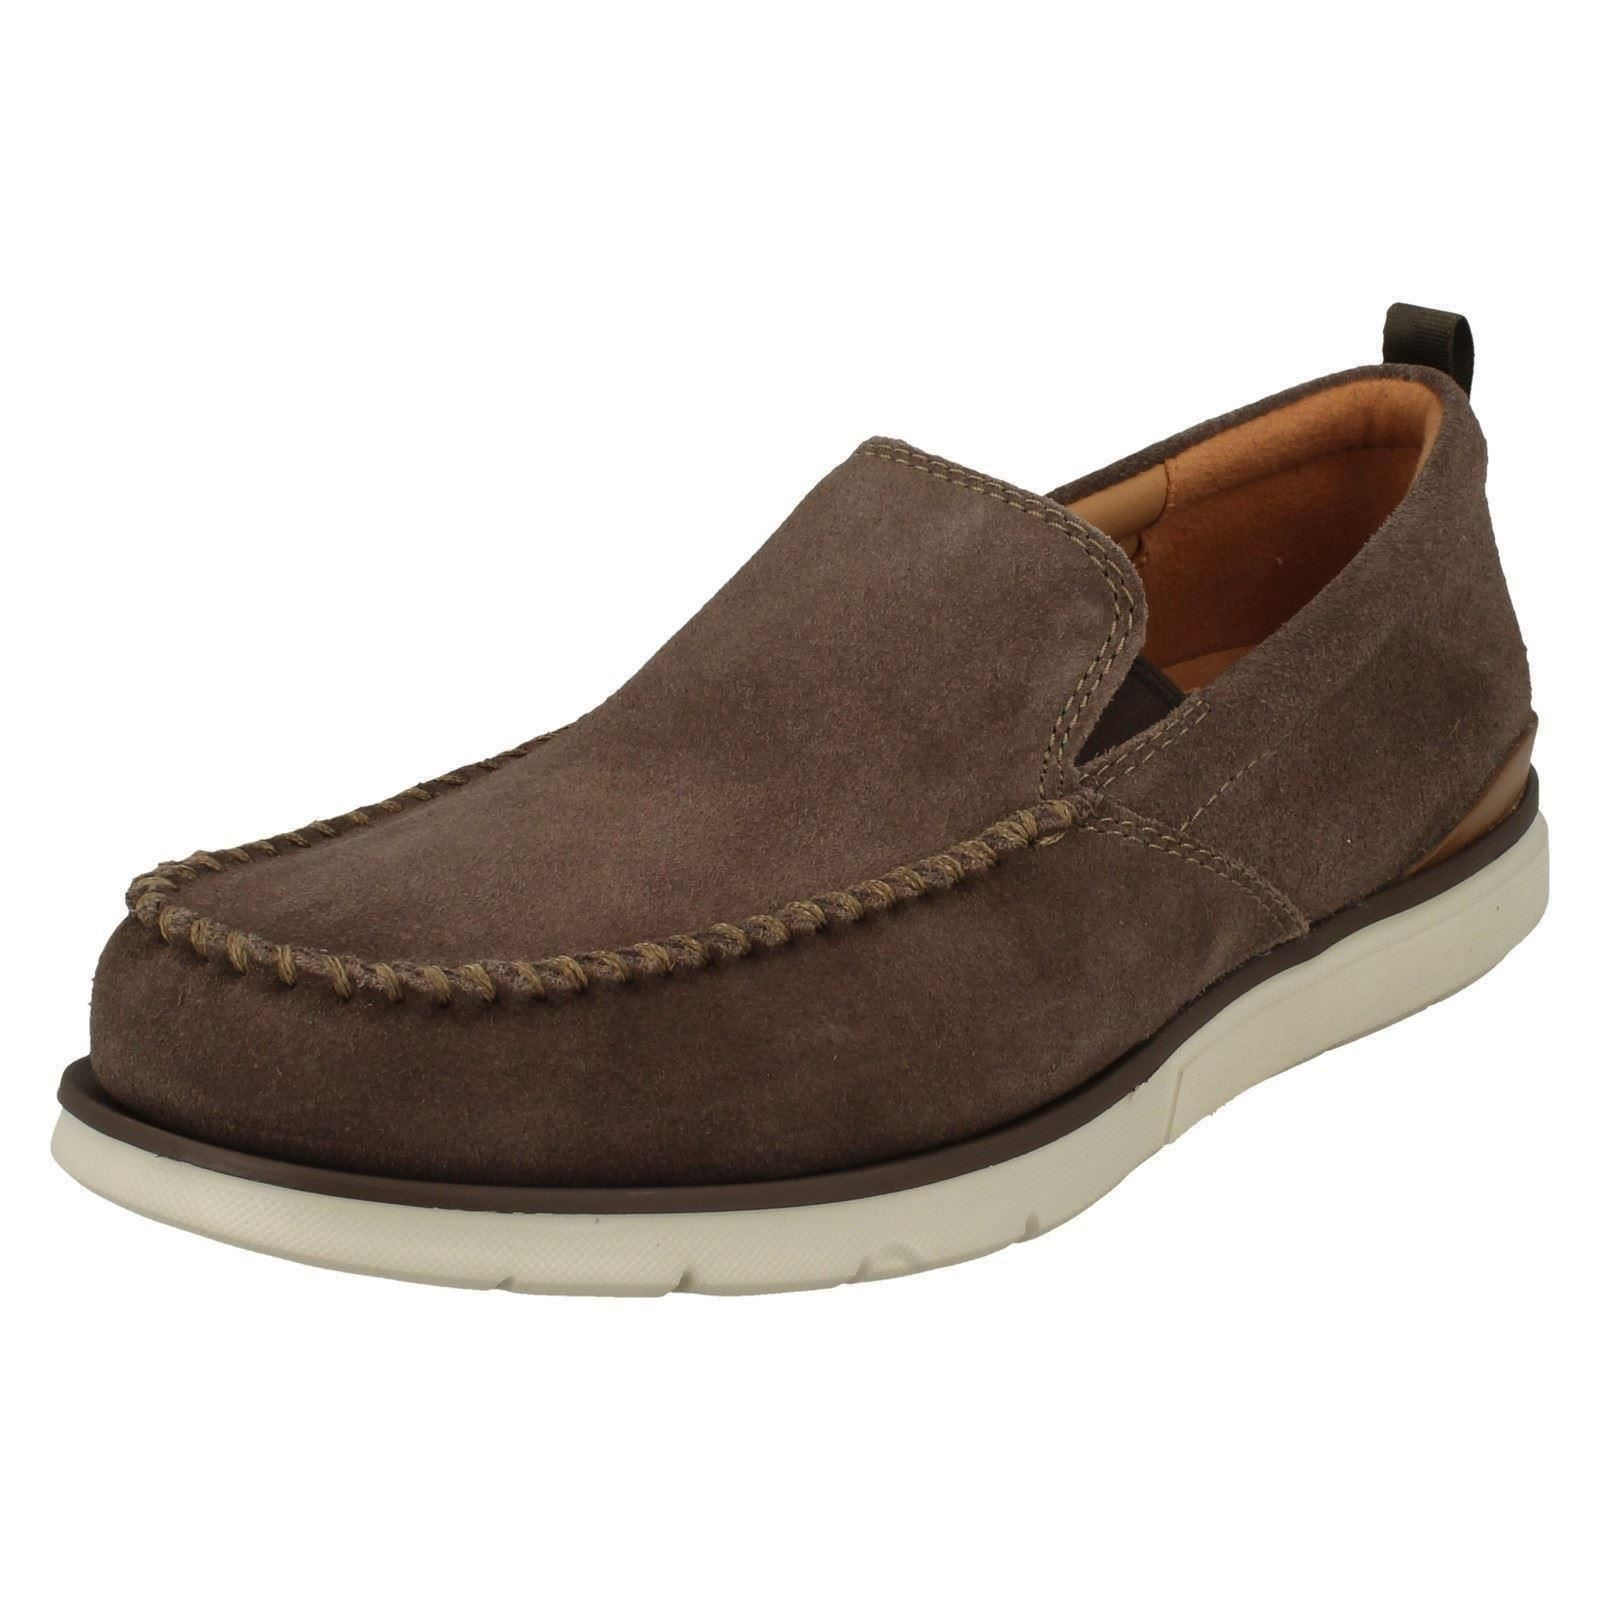 Men's Clarks Casual Slip On Shoes The The The Style - Edgewood Step cd6b3d